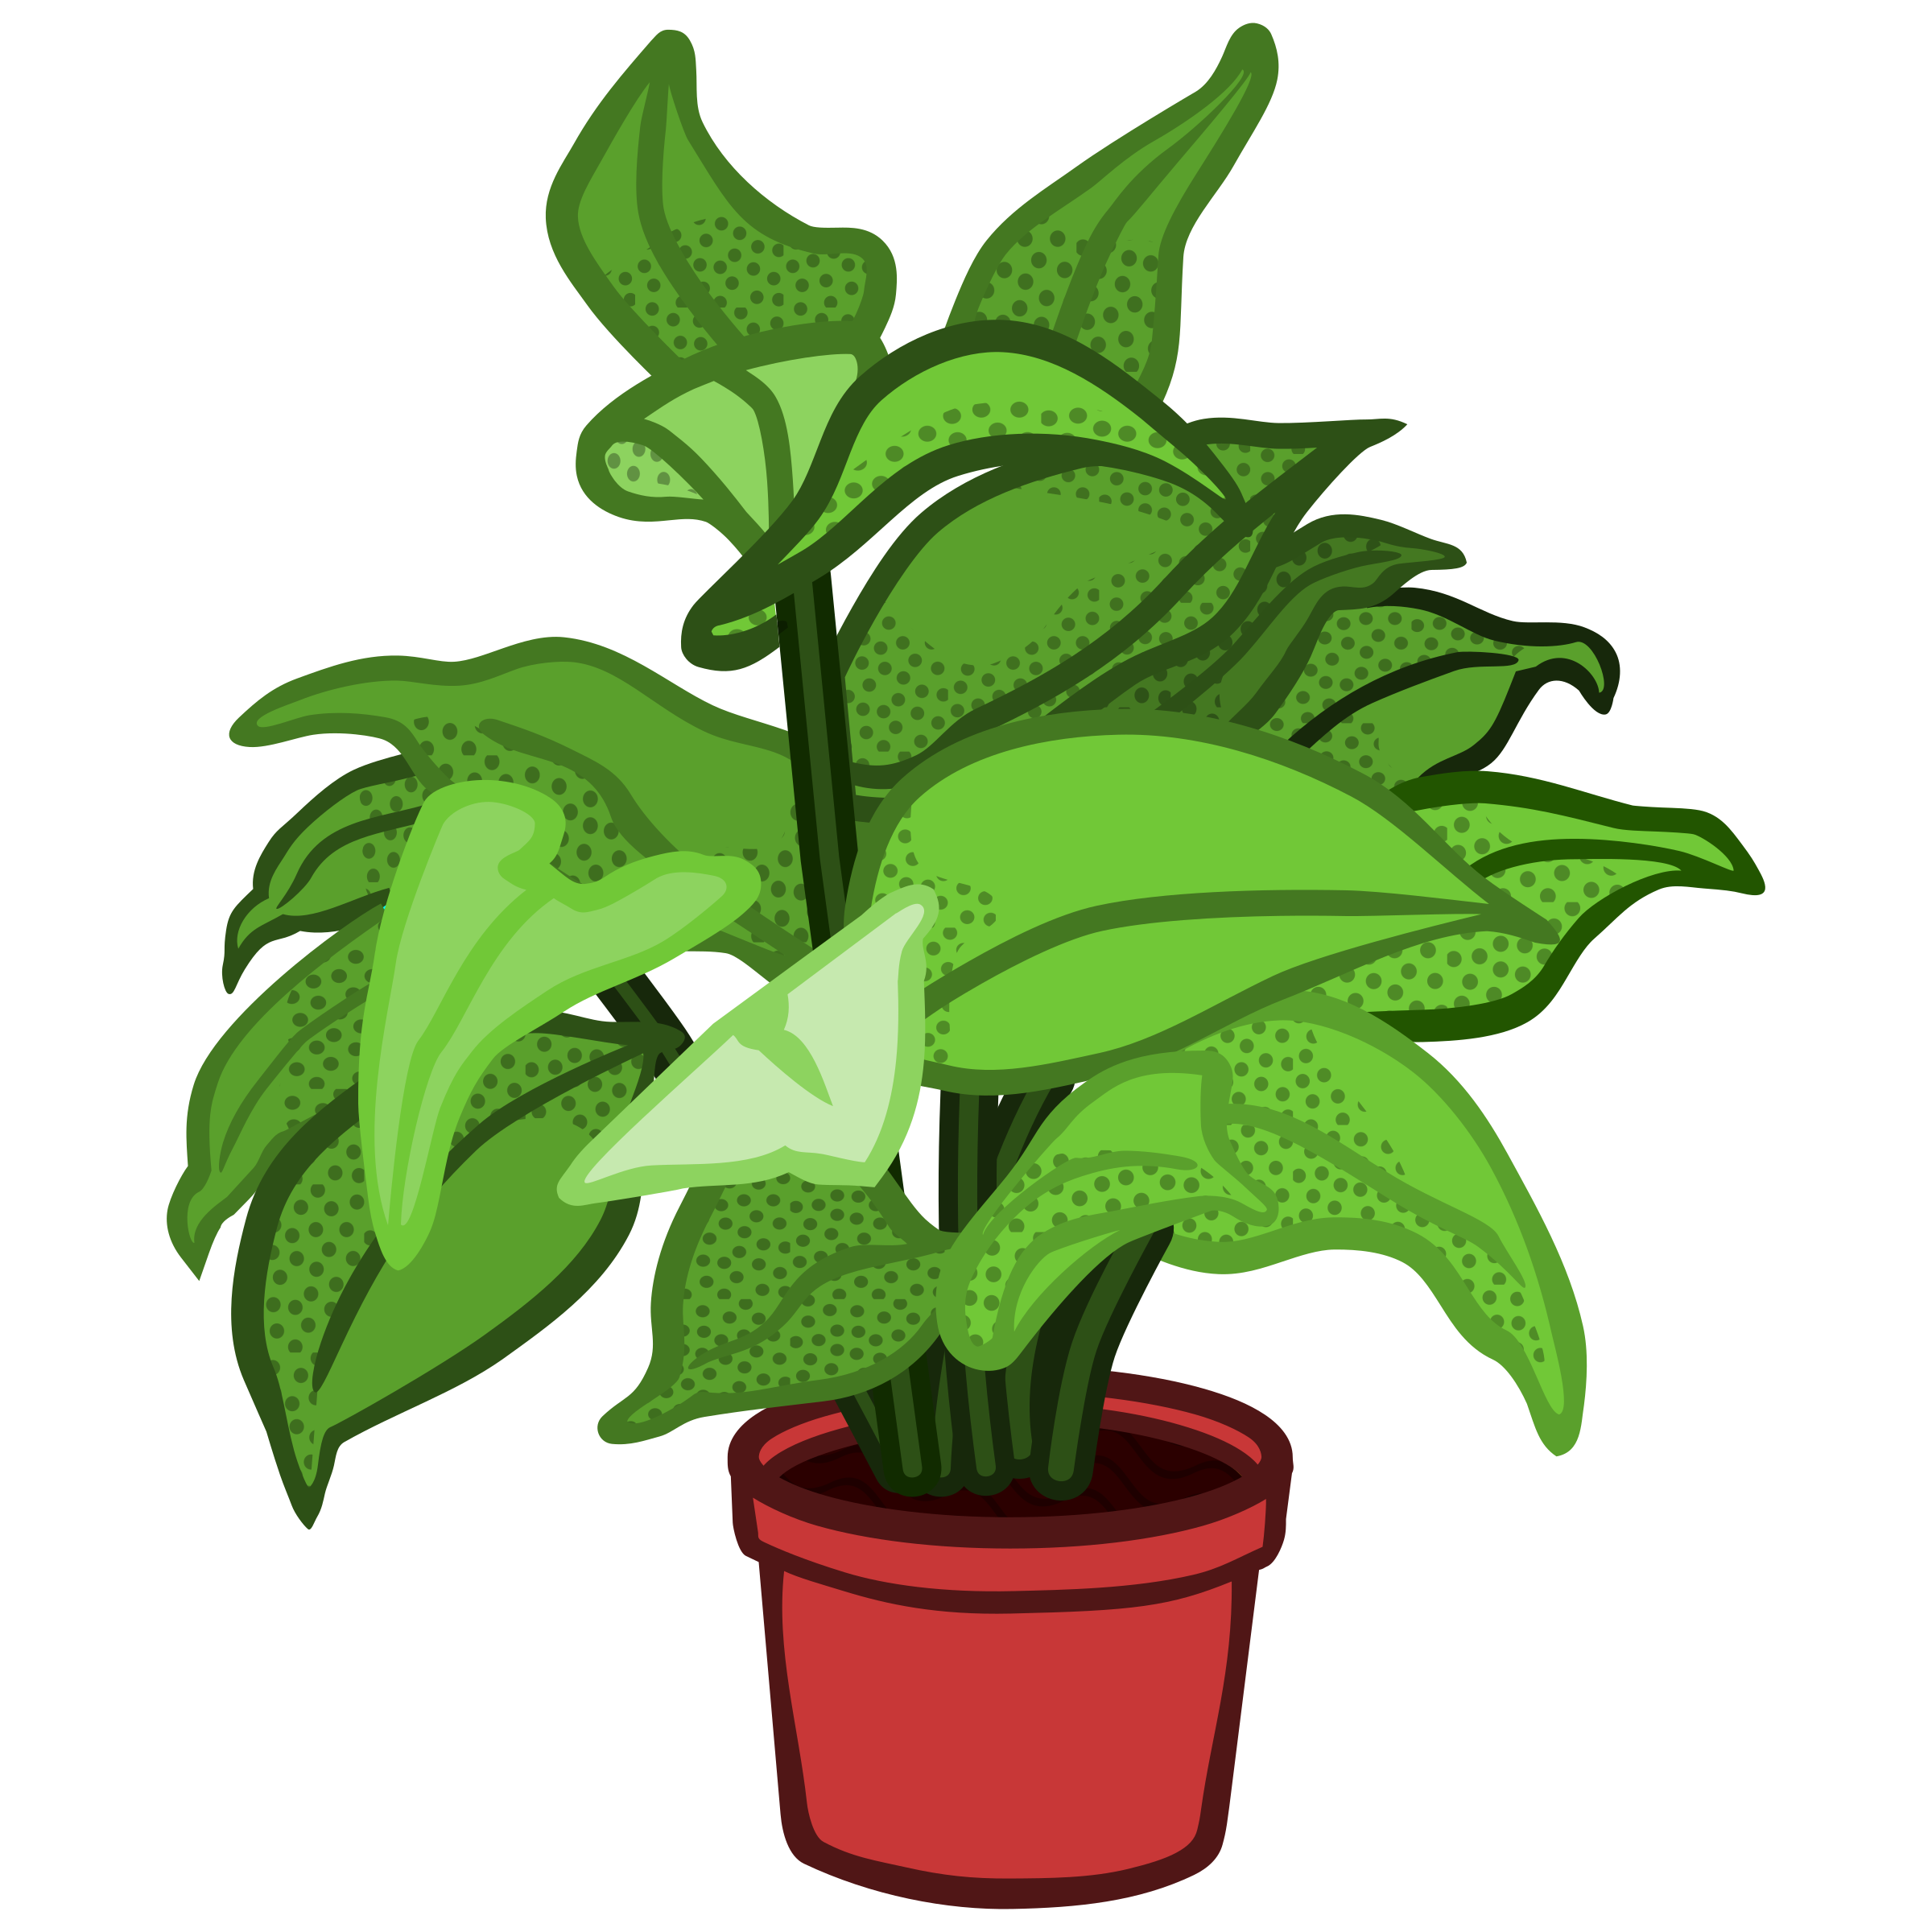 Plant clipart potted plant. Coloured big image png